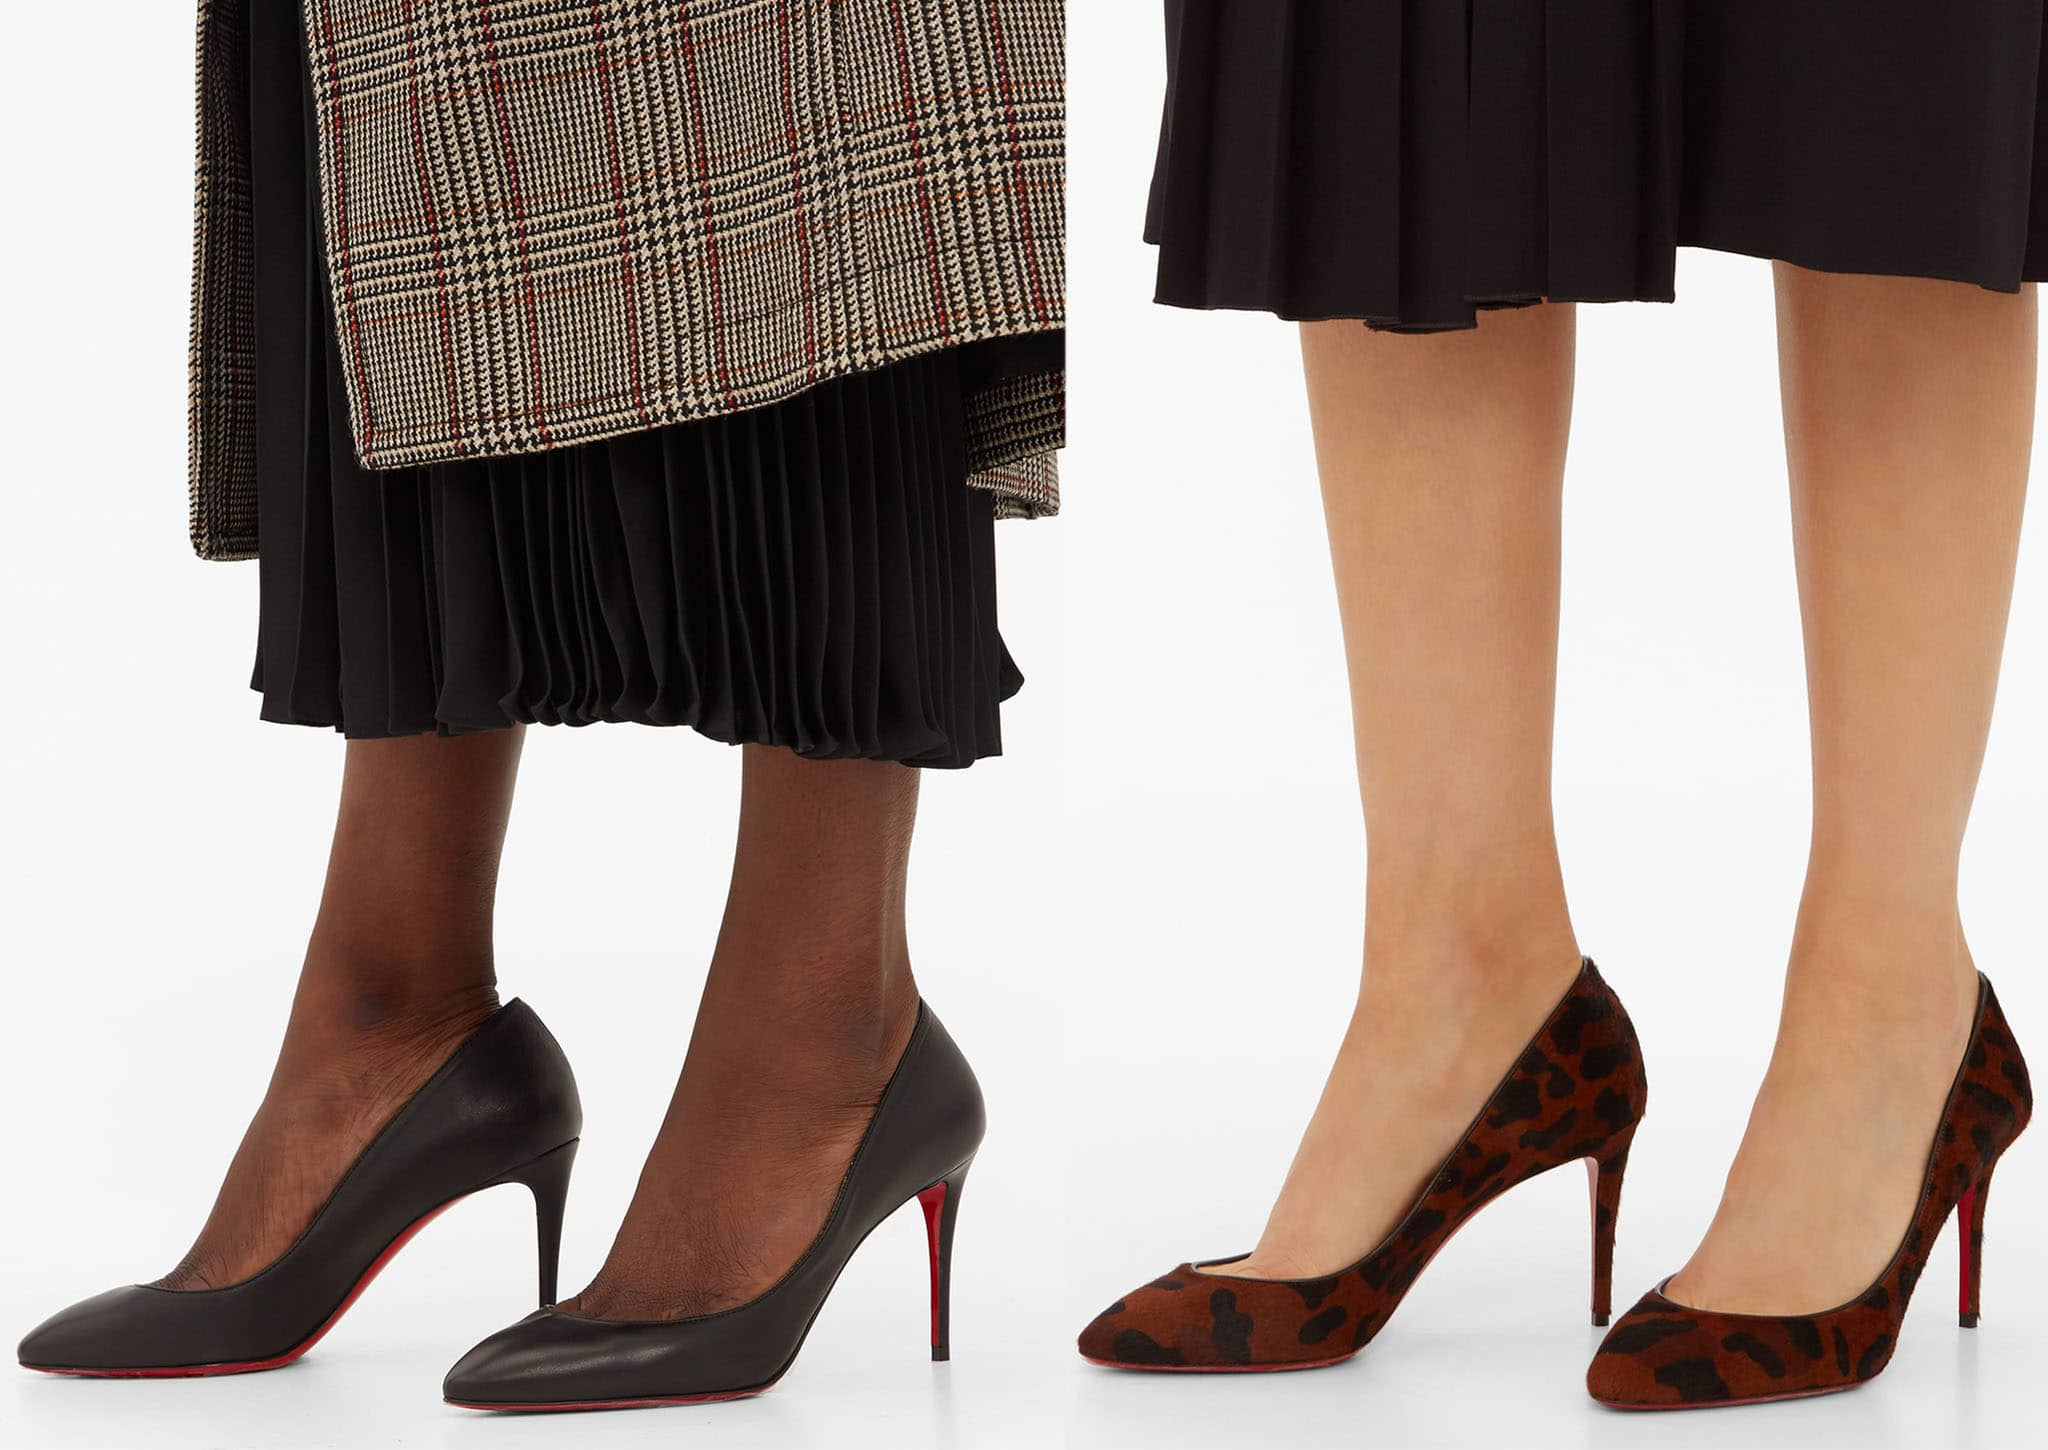 Look classy and comfy from day to night with the Eloise pumps featuring 85mm mid heels